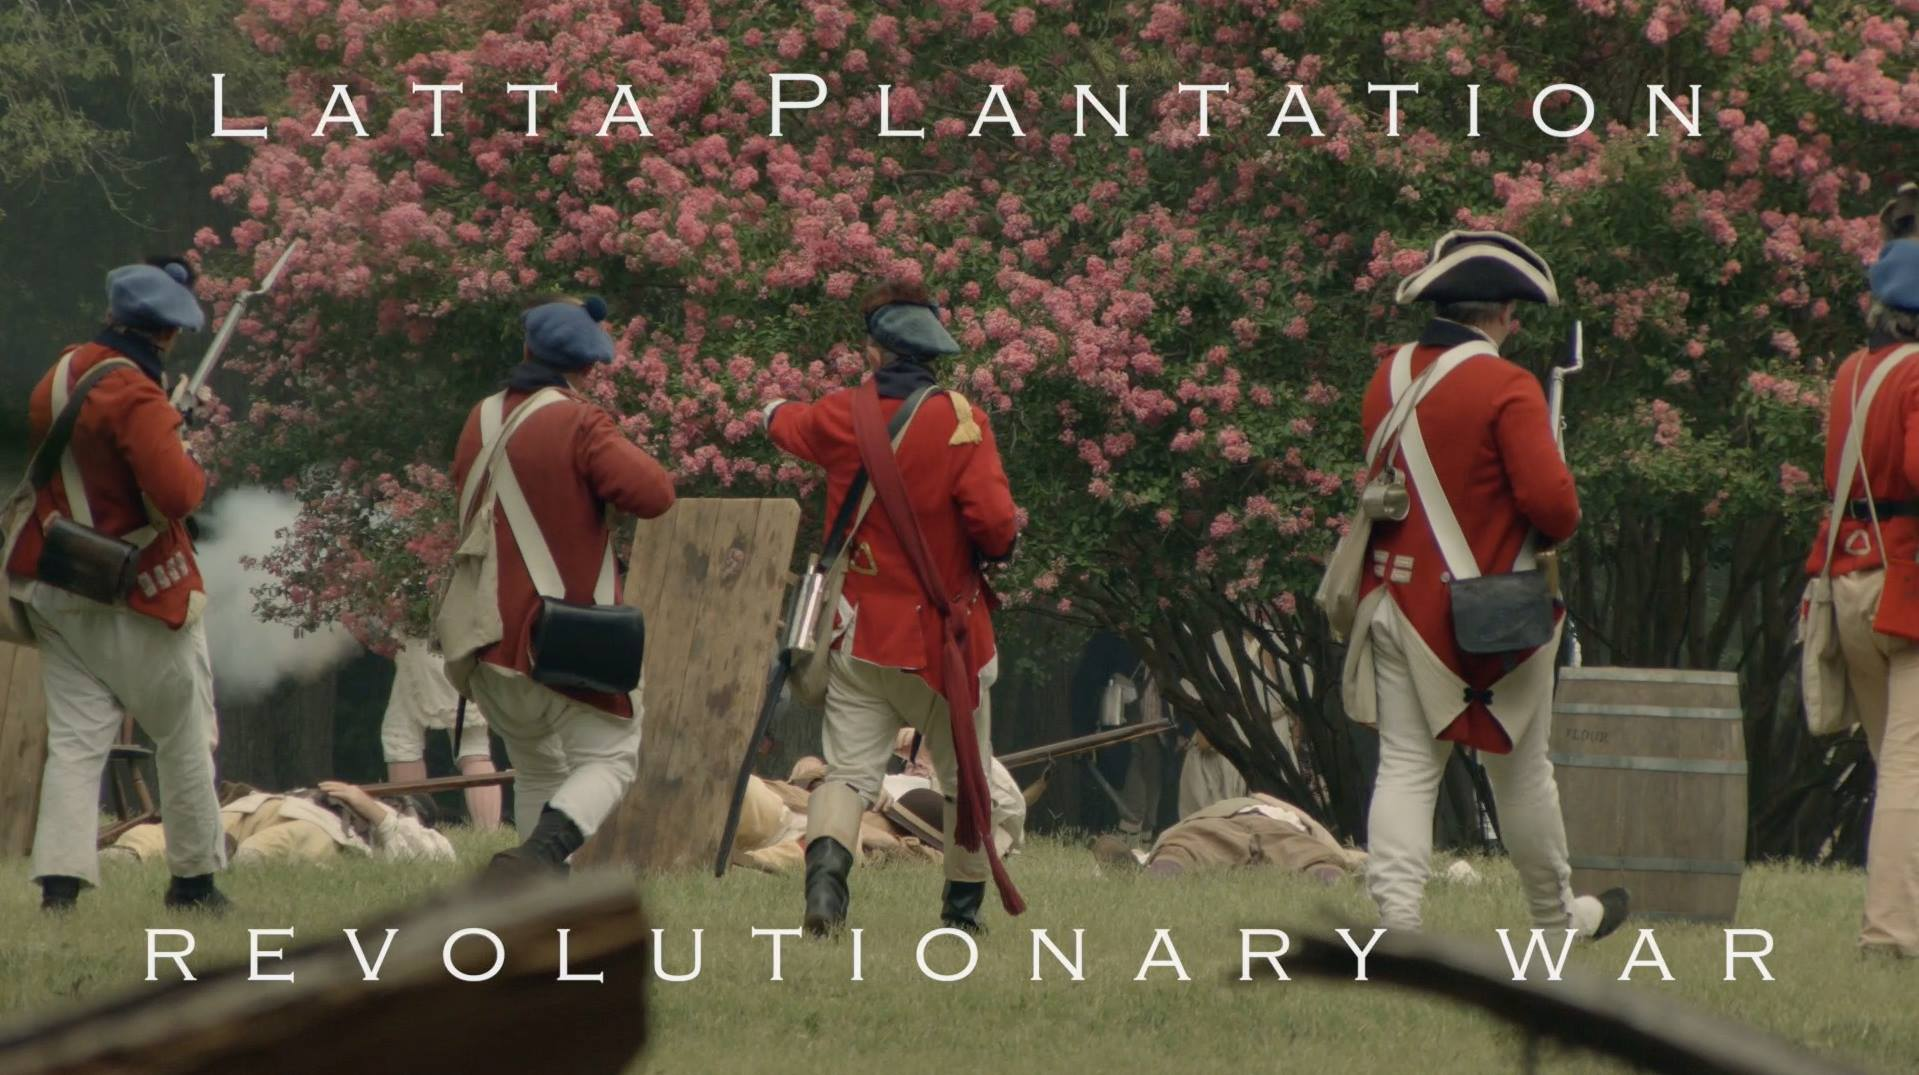 revolutionary-war-reinactment-things-to-do-in-charlotte